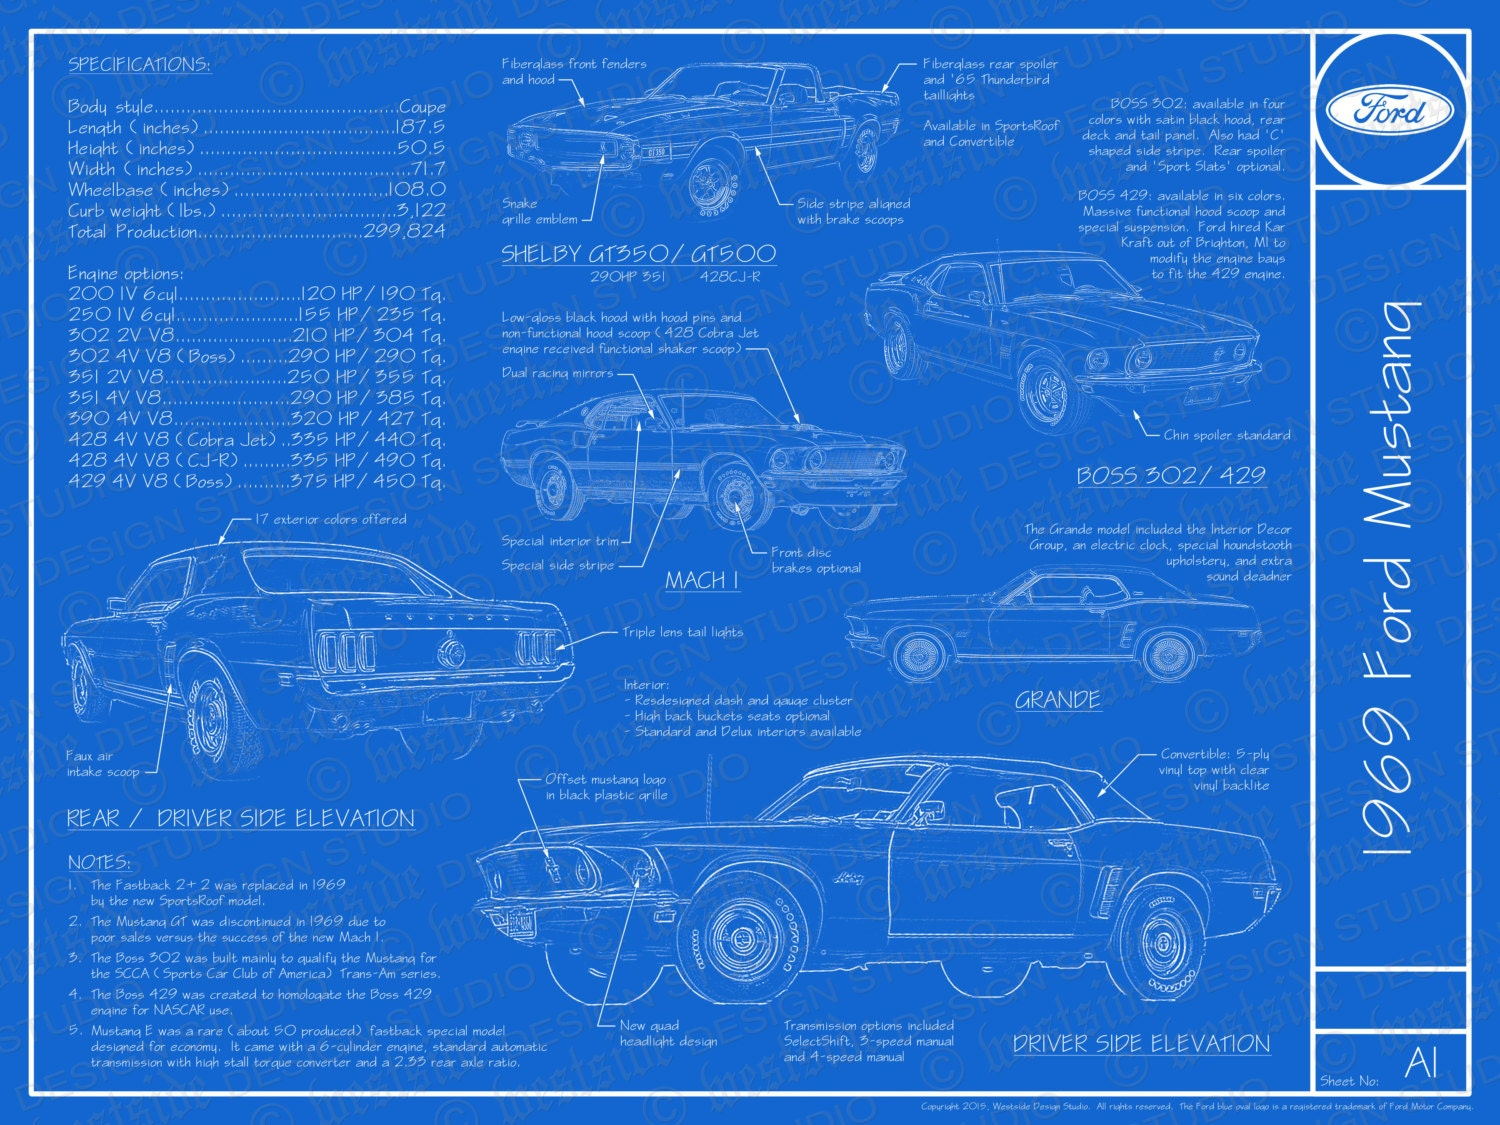 1969 ford mustang blueprint cartel 18 x 24 ampliar malvernweather Image collections